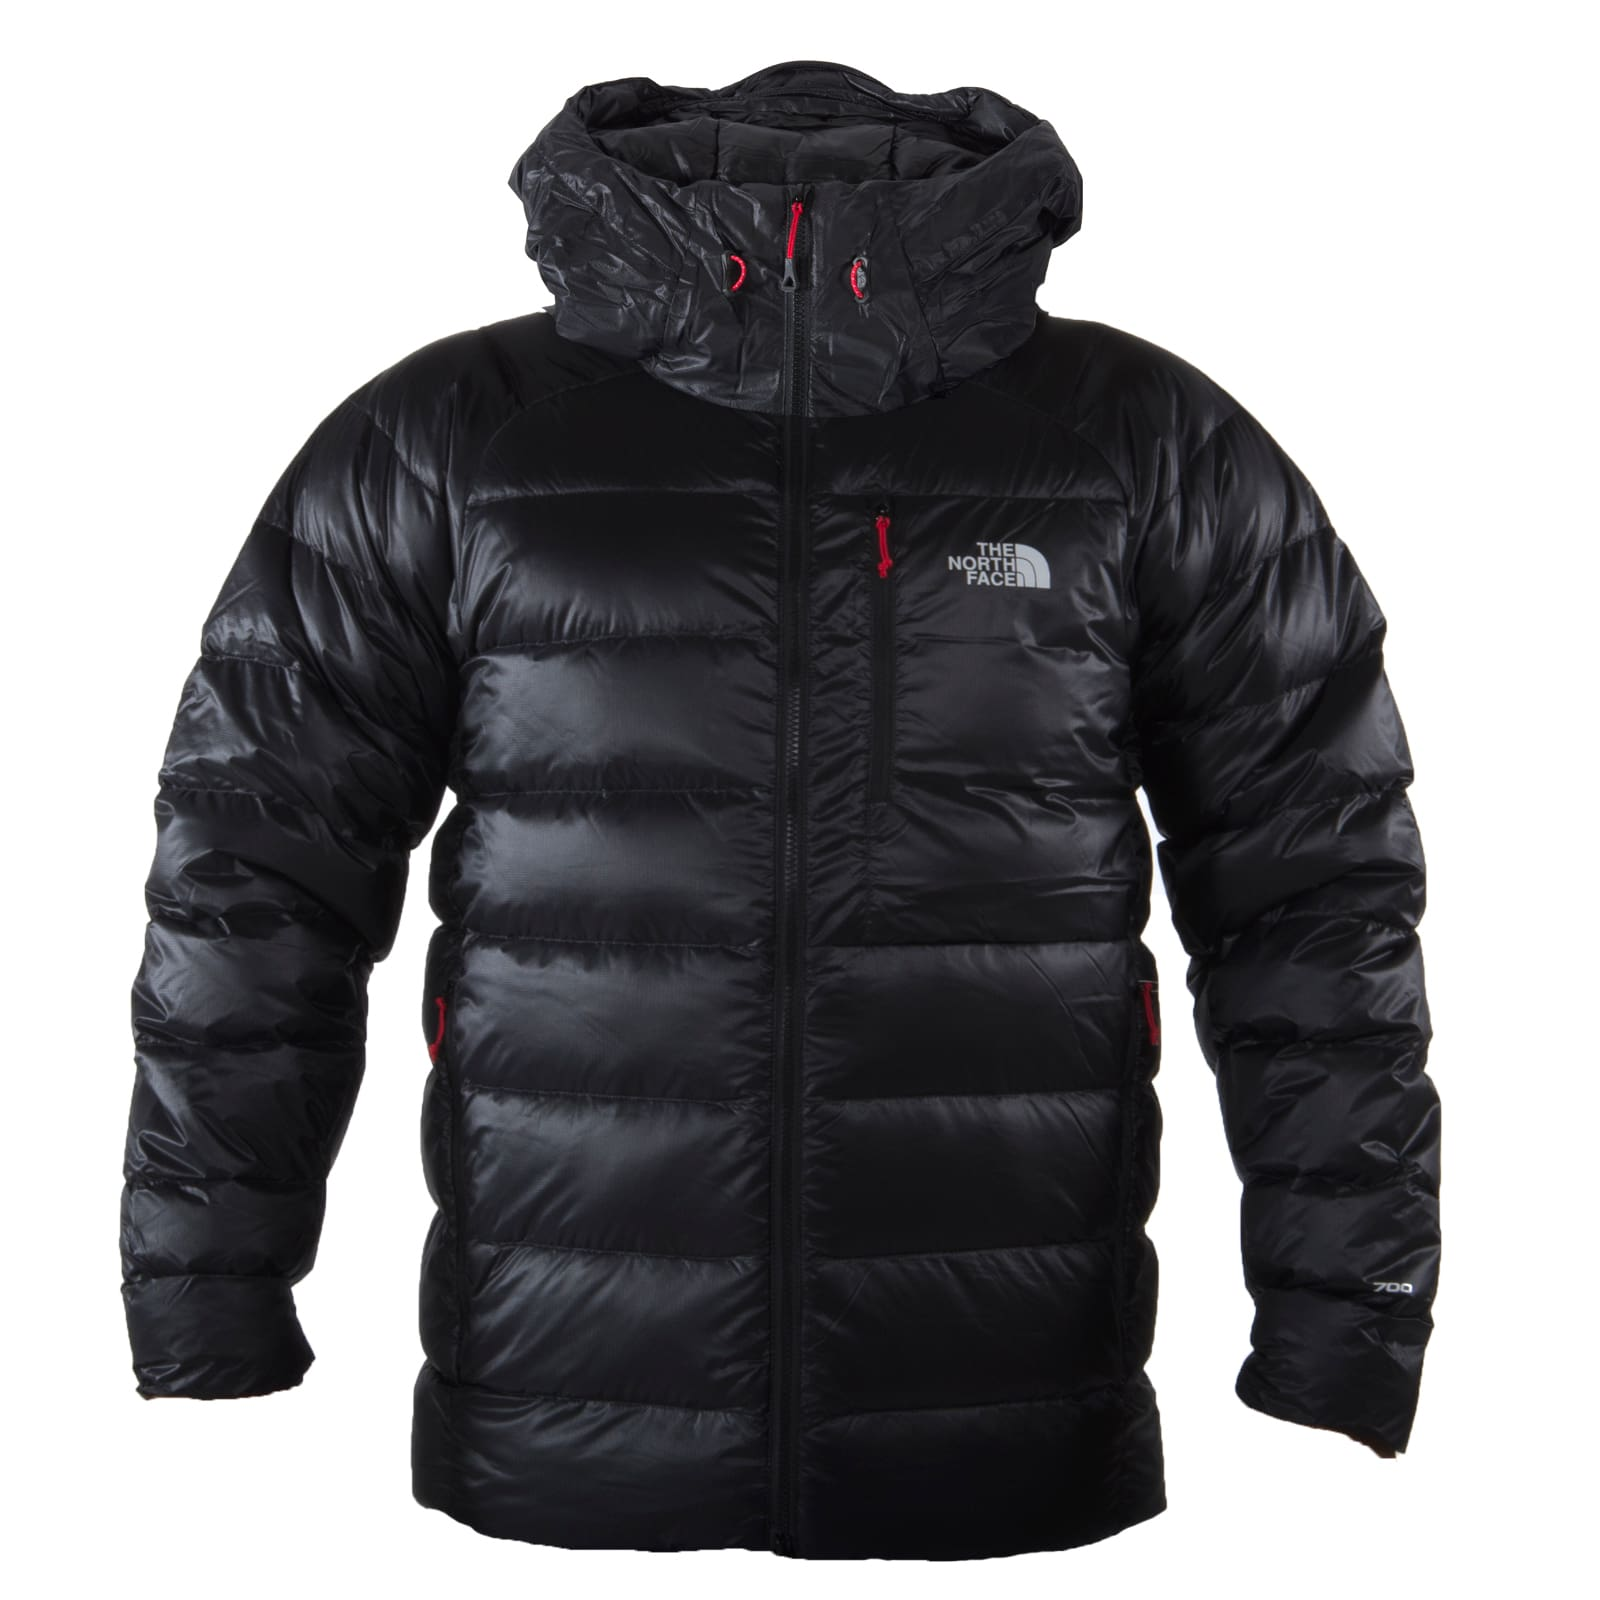 Kjøp The North Face Men's Quince Hooded Jacket fra Outnorth